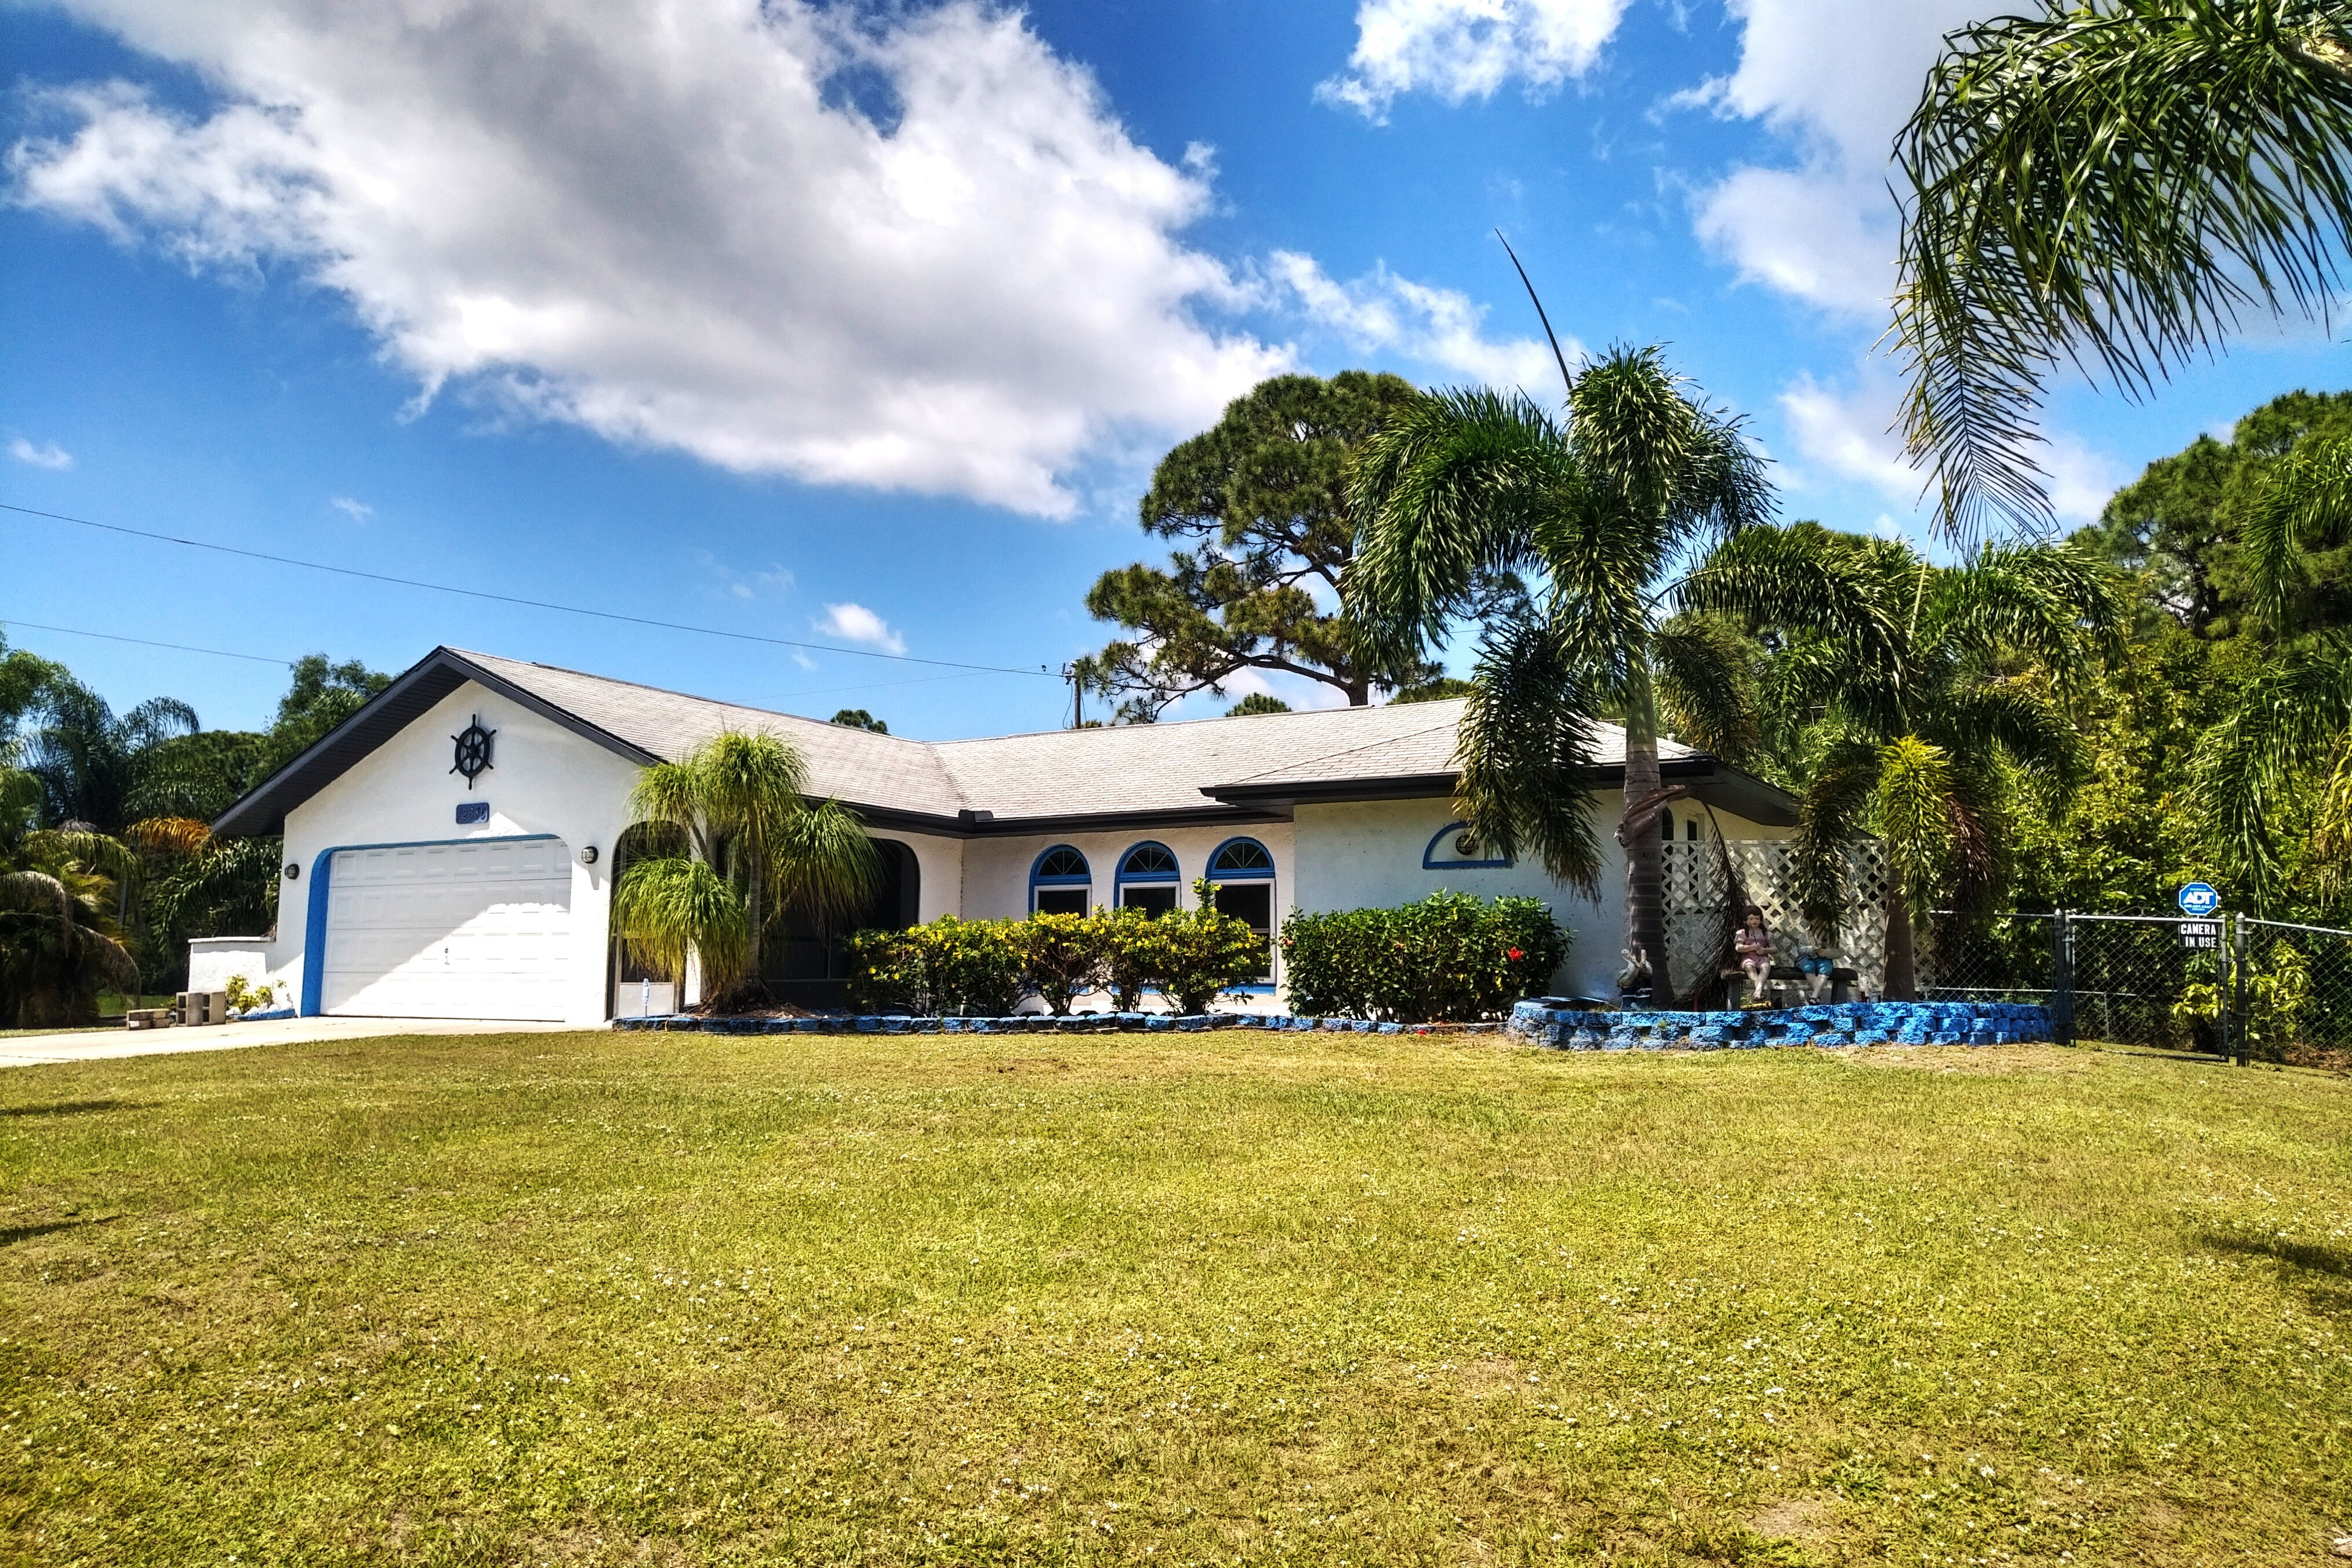 Nautical Port Charlotte, Florida house for sale.